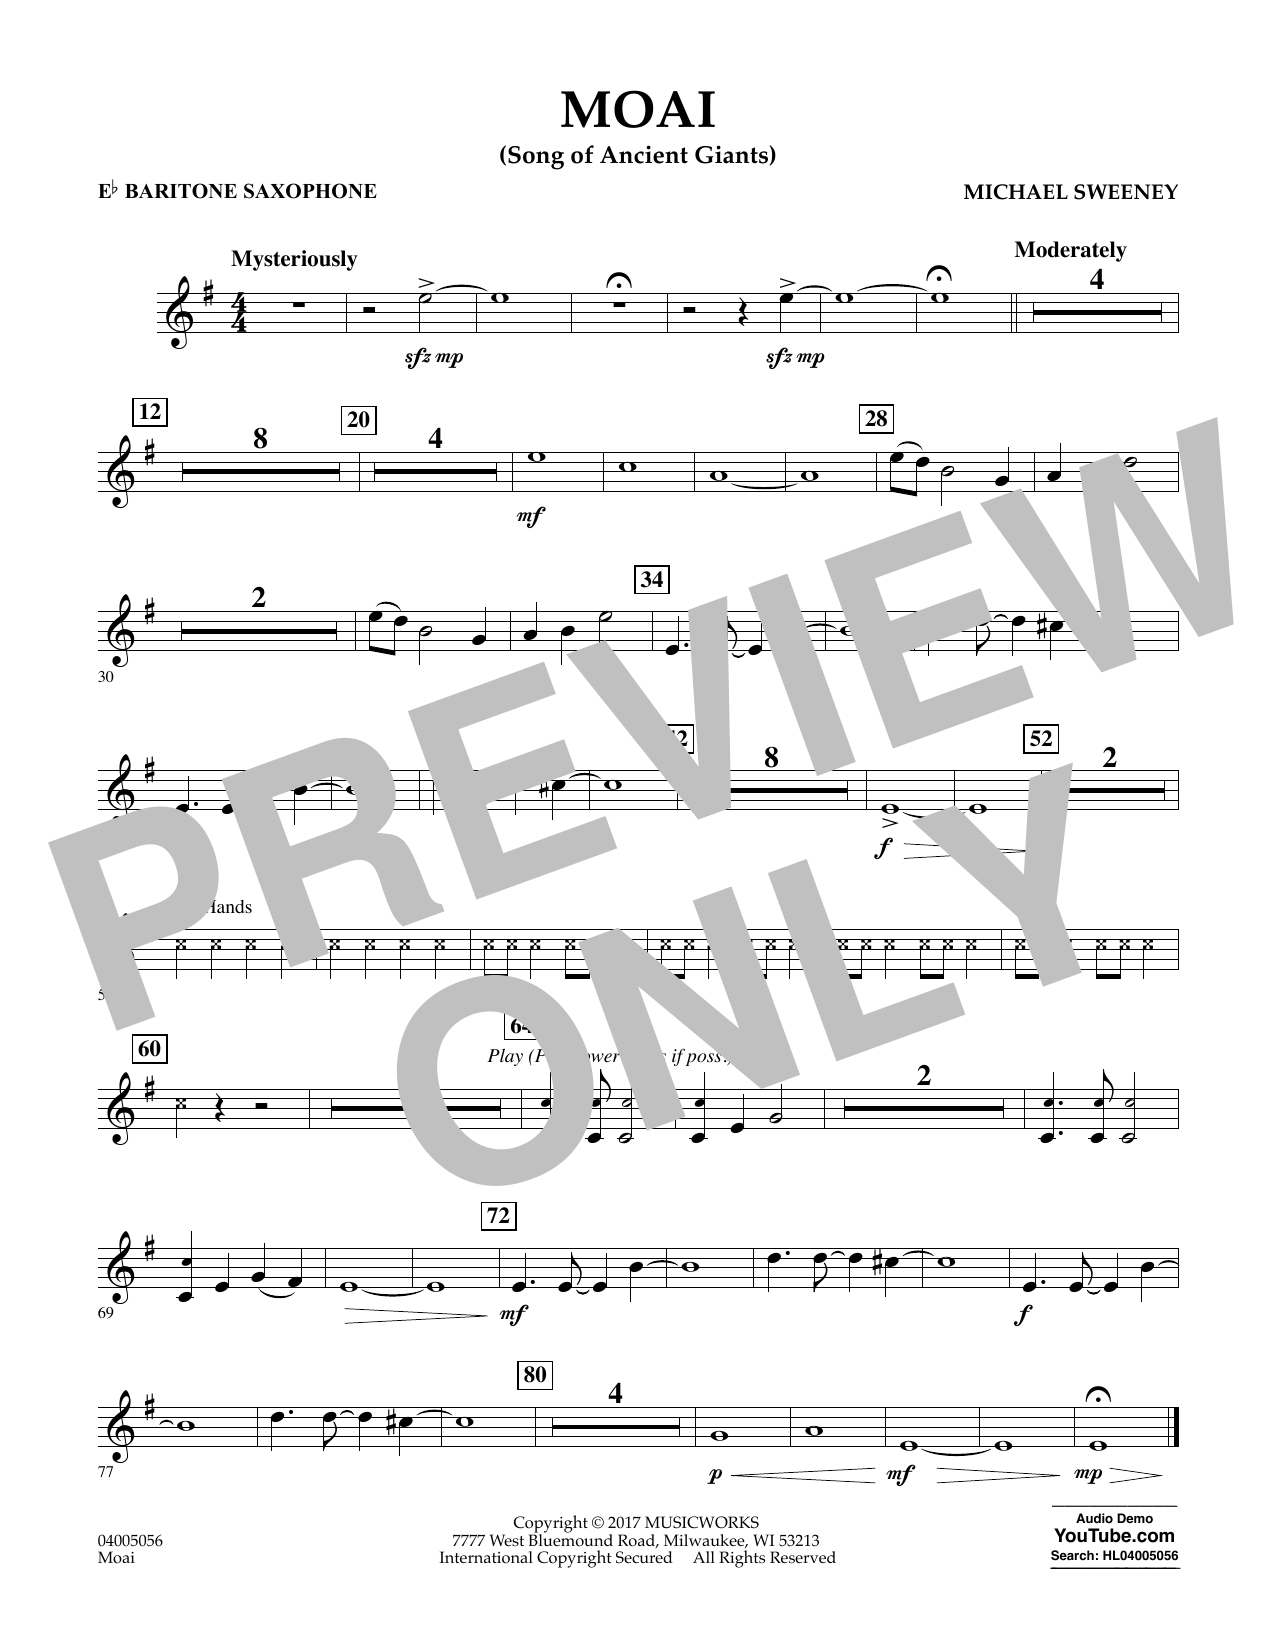 Michael Sweeney Moai (Songs of Ancient Giants) - Eb Baritone Saxophone sheet music notes and chords. Download Printable PDF.